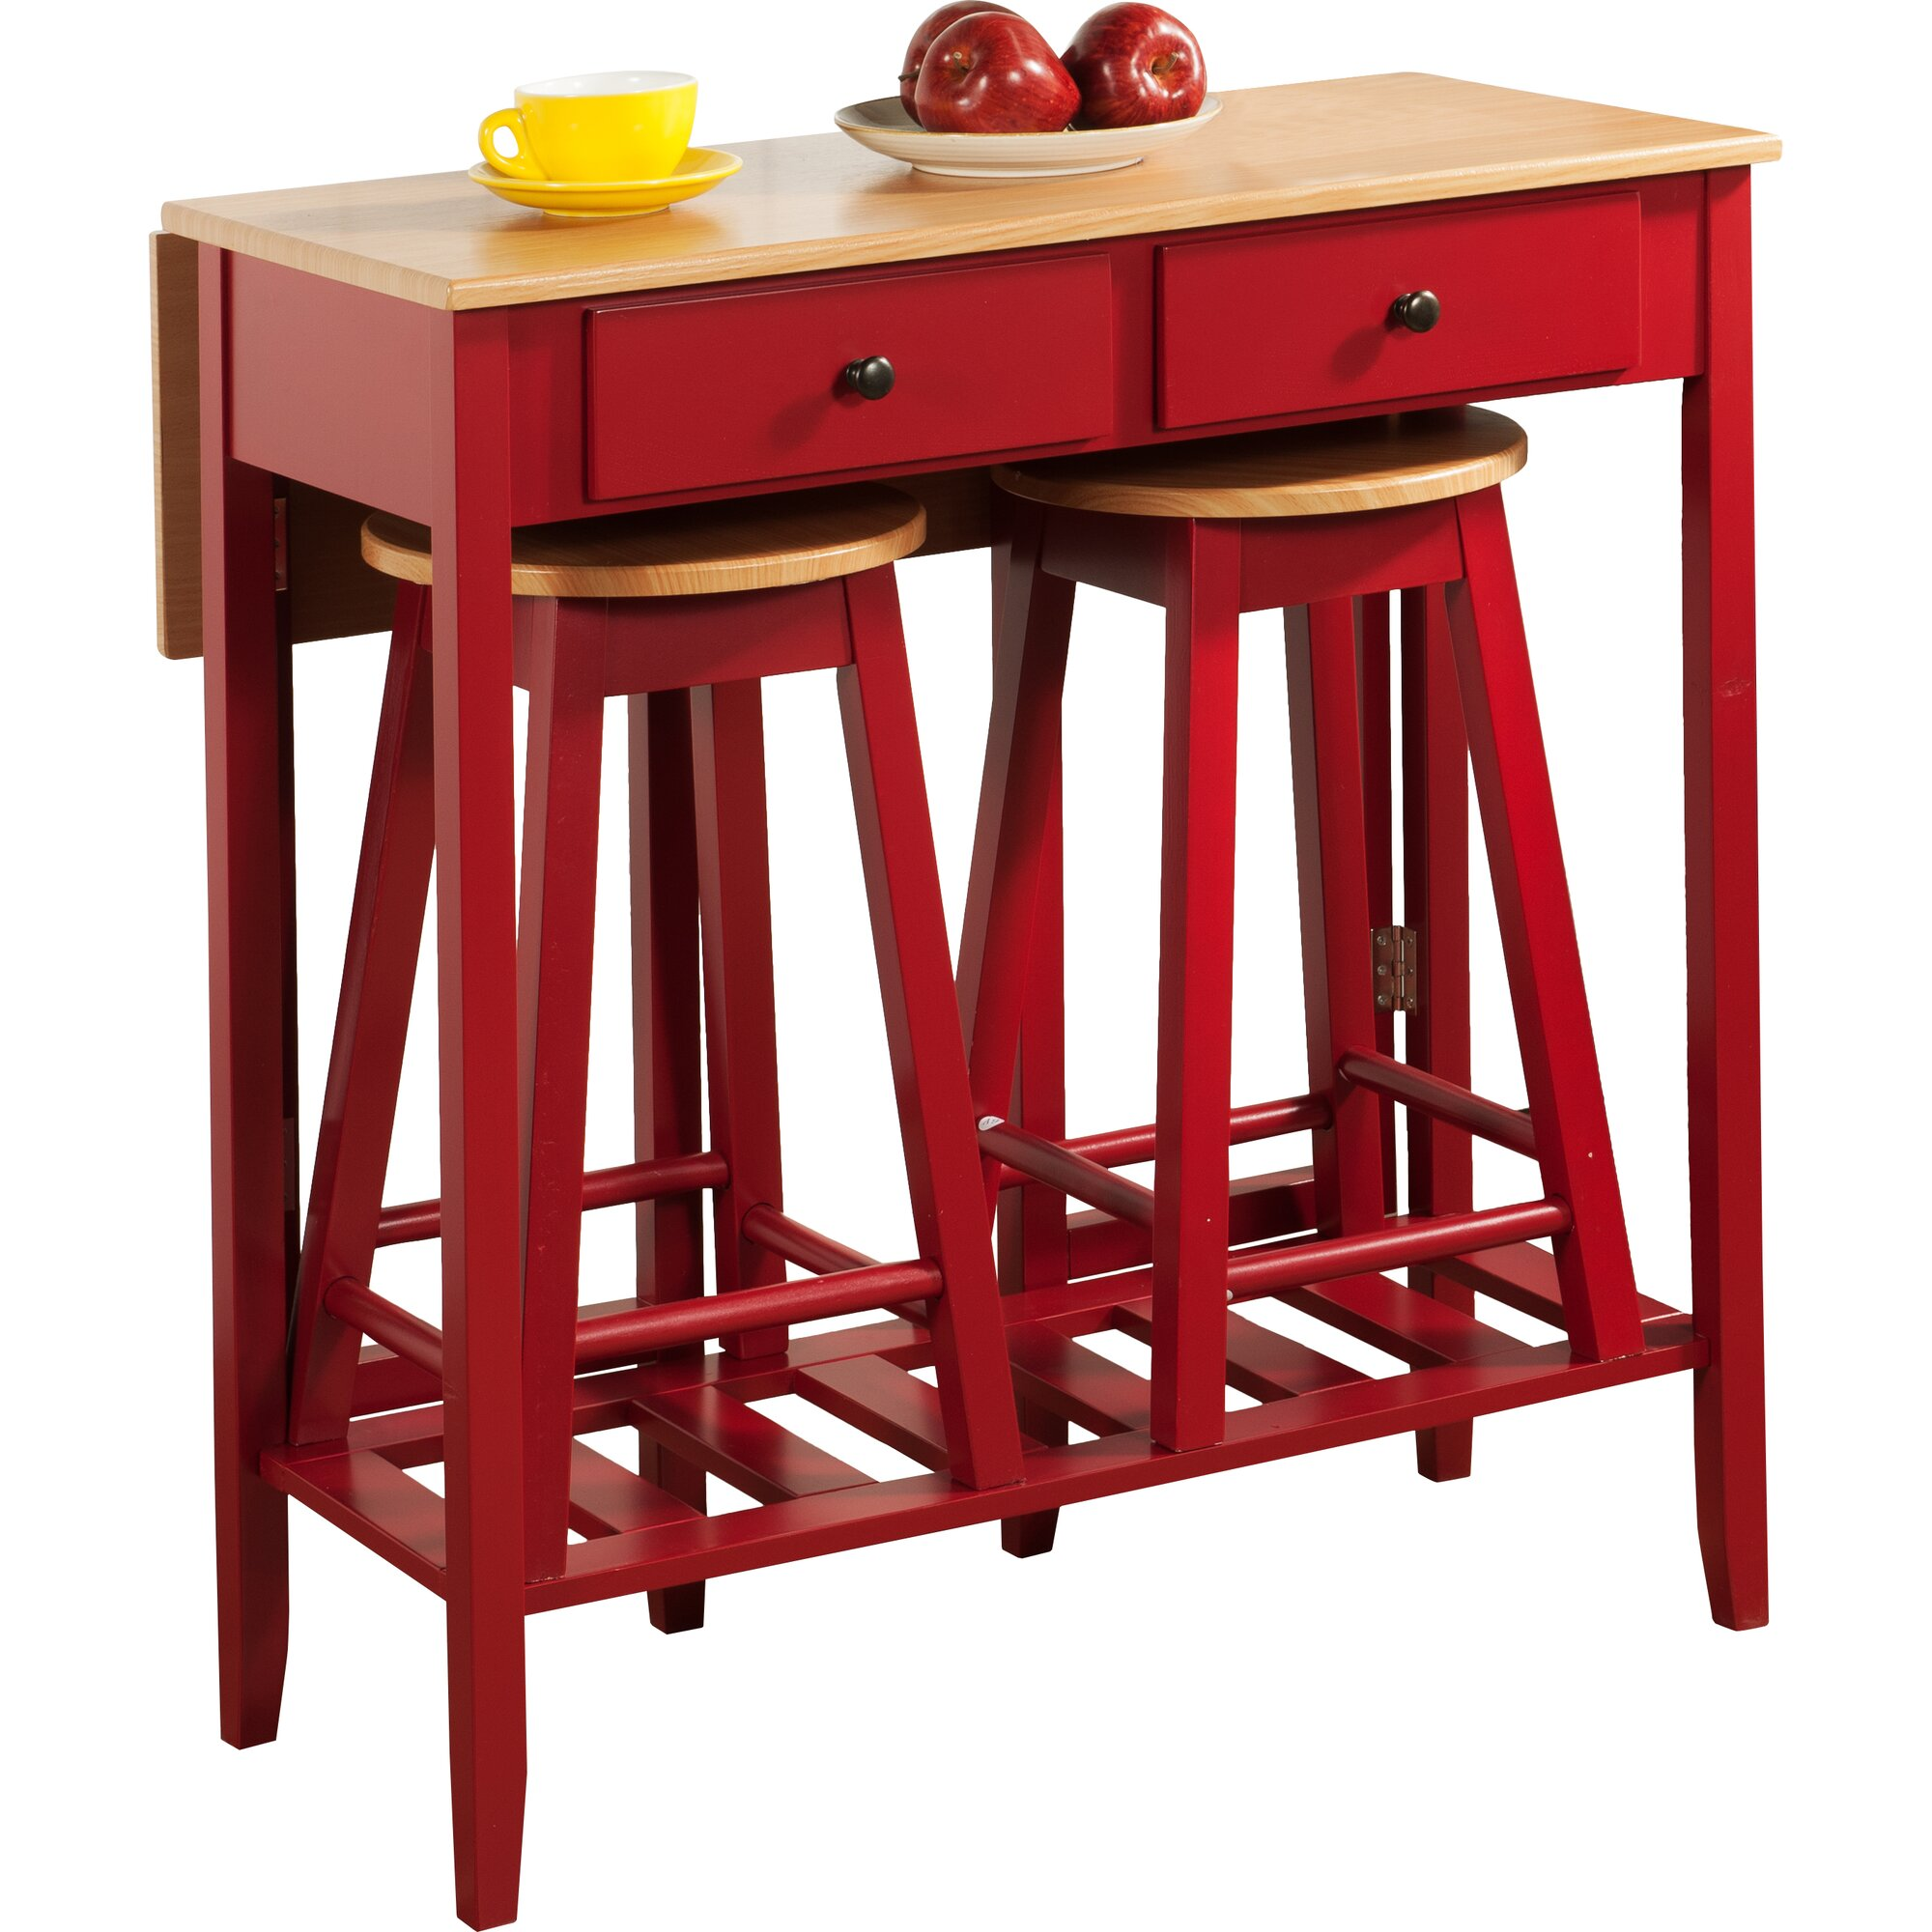 InRoom Designs 3 Piece Pub Table Set amp Reviews Wayfair : 3PiecePubTableSet from www.wayfair.com size 2000 x 2000 jpeg 303kB